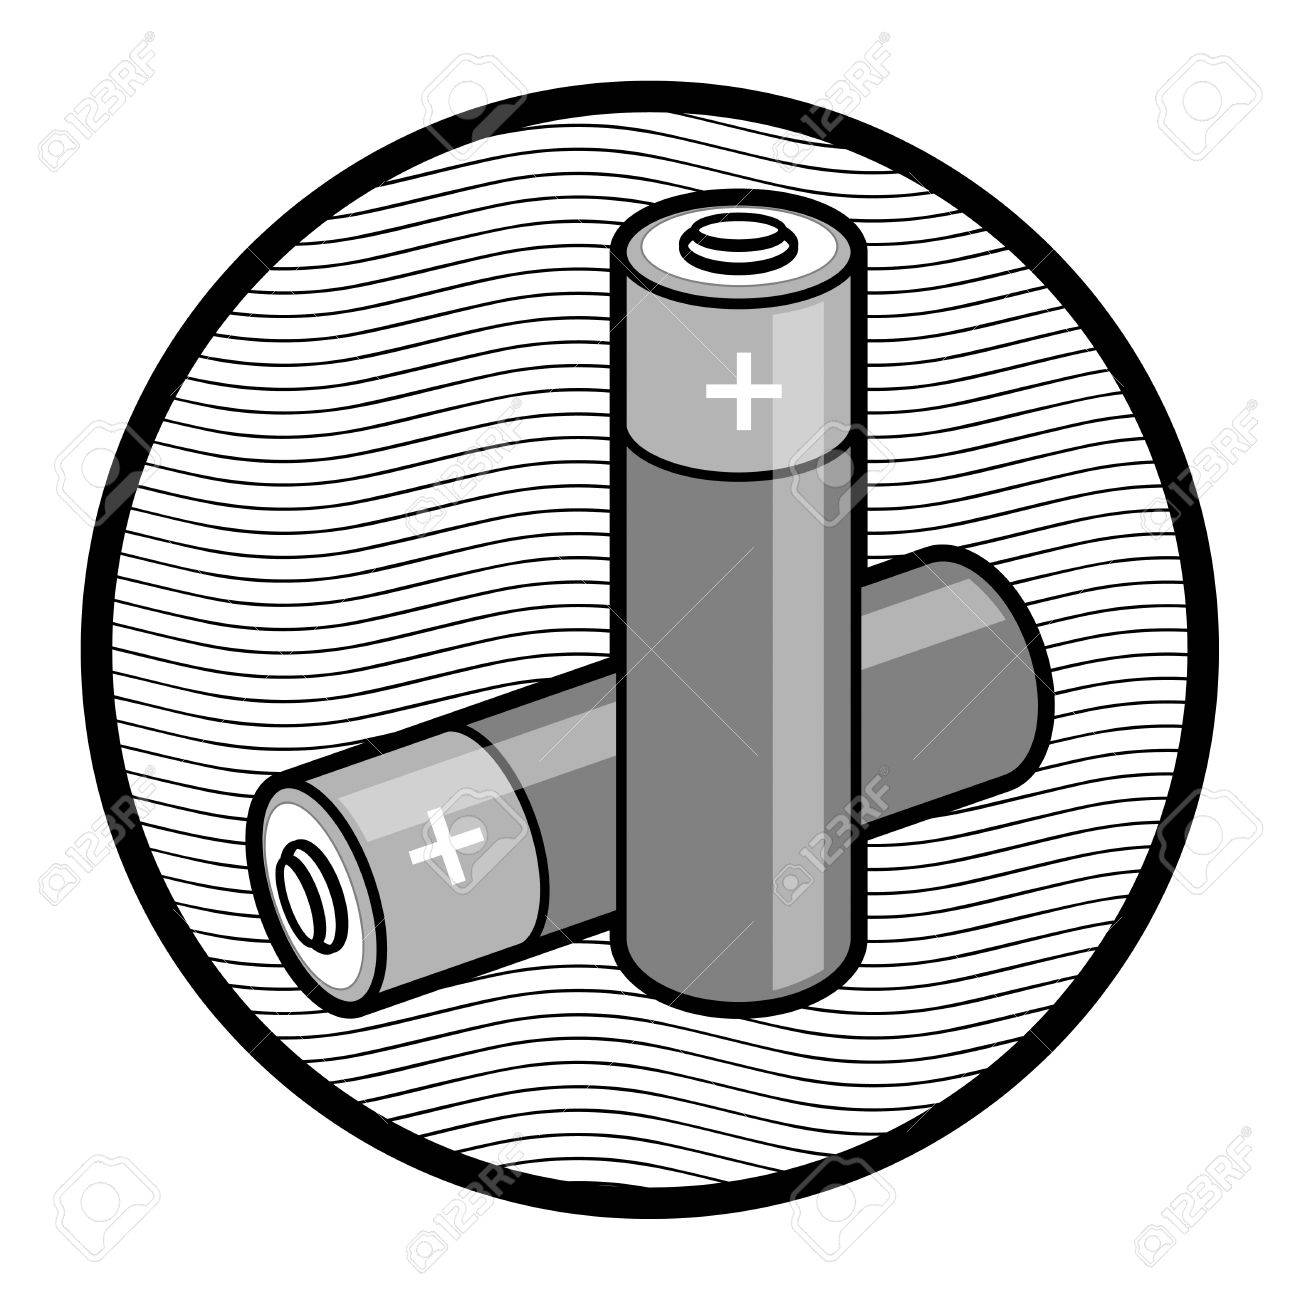 1300x1300 Two Batteries Sign Royalty Free Cliparts, Vectors, And Stock